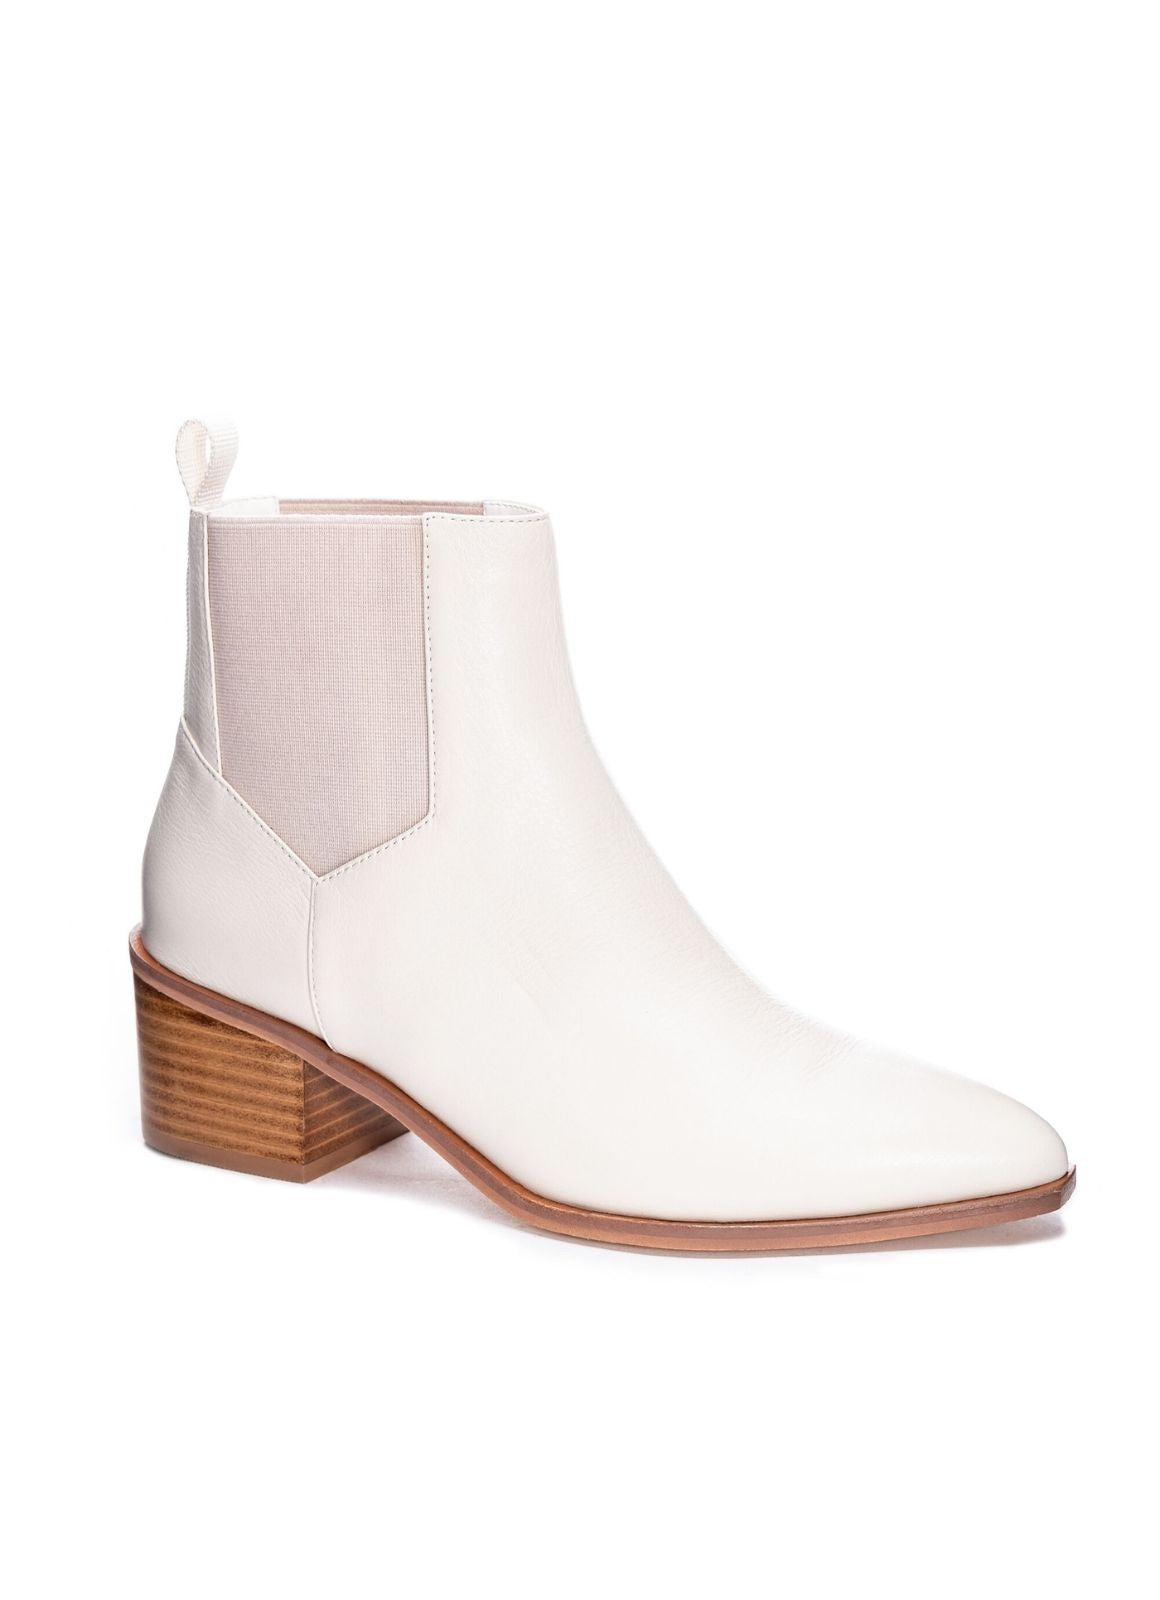 Chinese Laundry - Filip Bootie